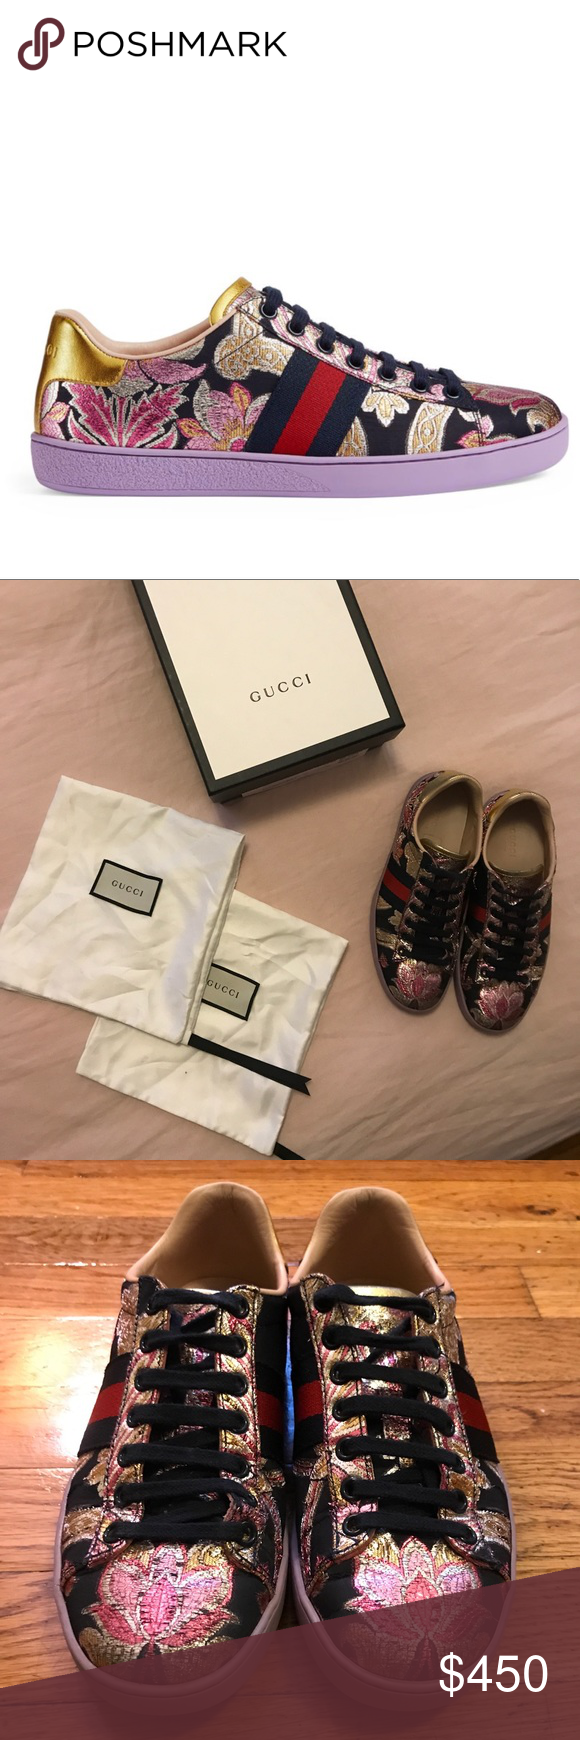 34844ff420c Gucci New Ace Brocade Lace Up Sneakers Fits true to size Multicolor brocade  and metallic gold leather low top lace up sneaker Round toe Blue and red ...